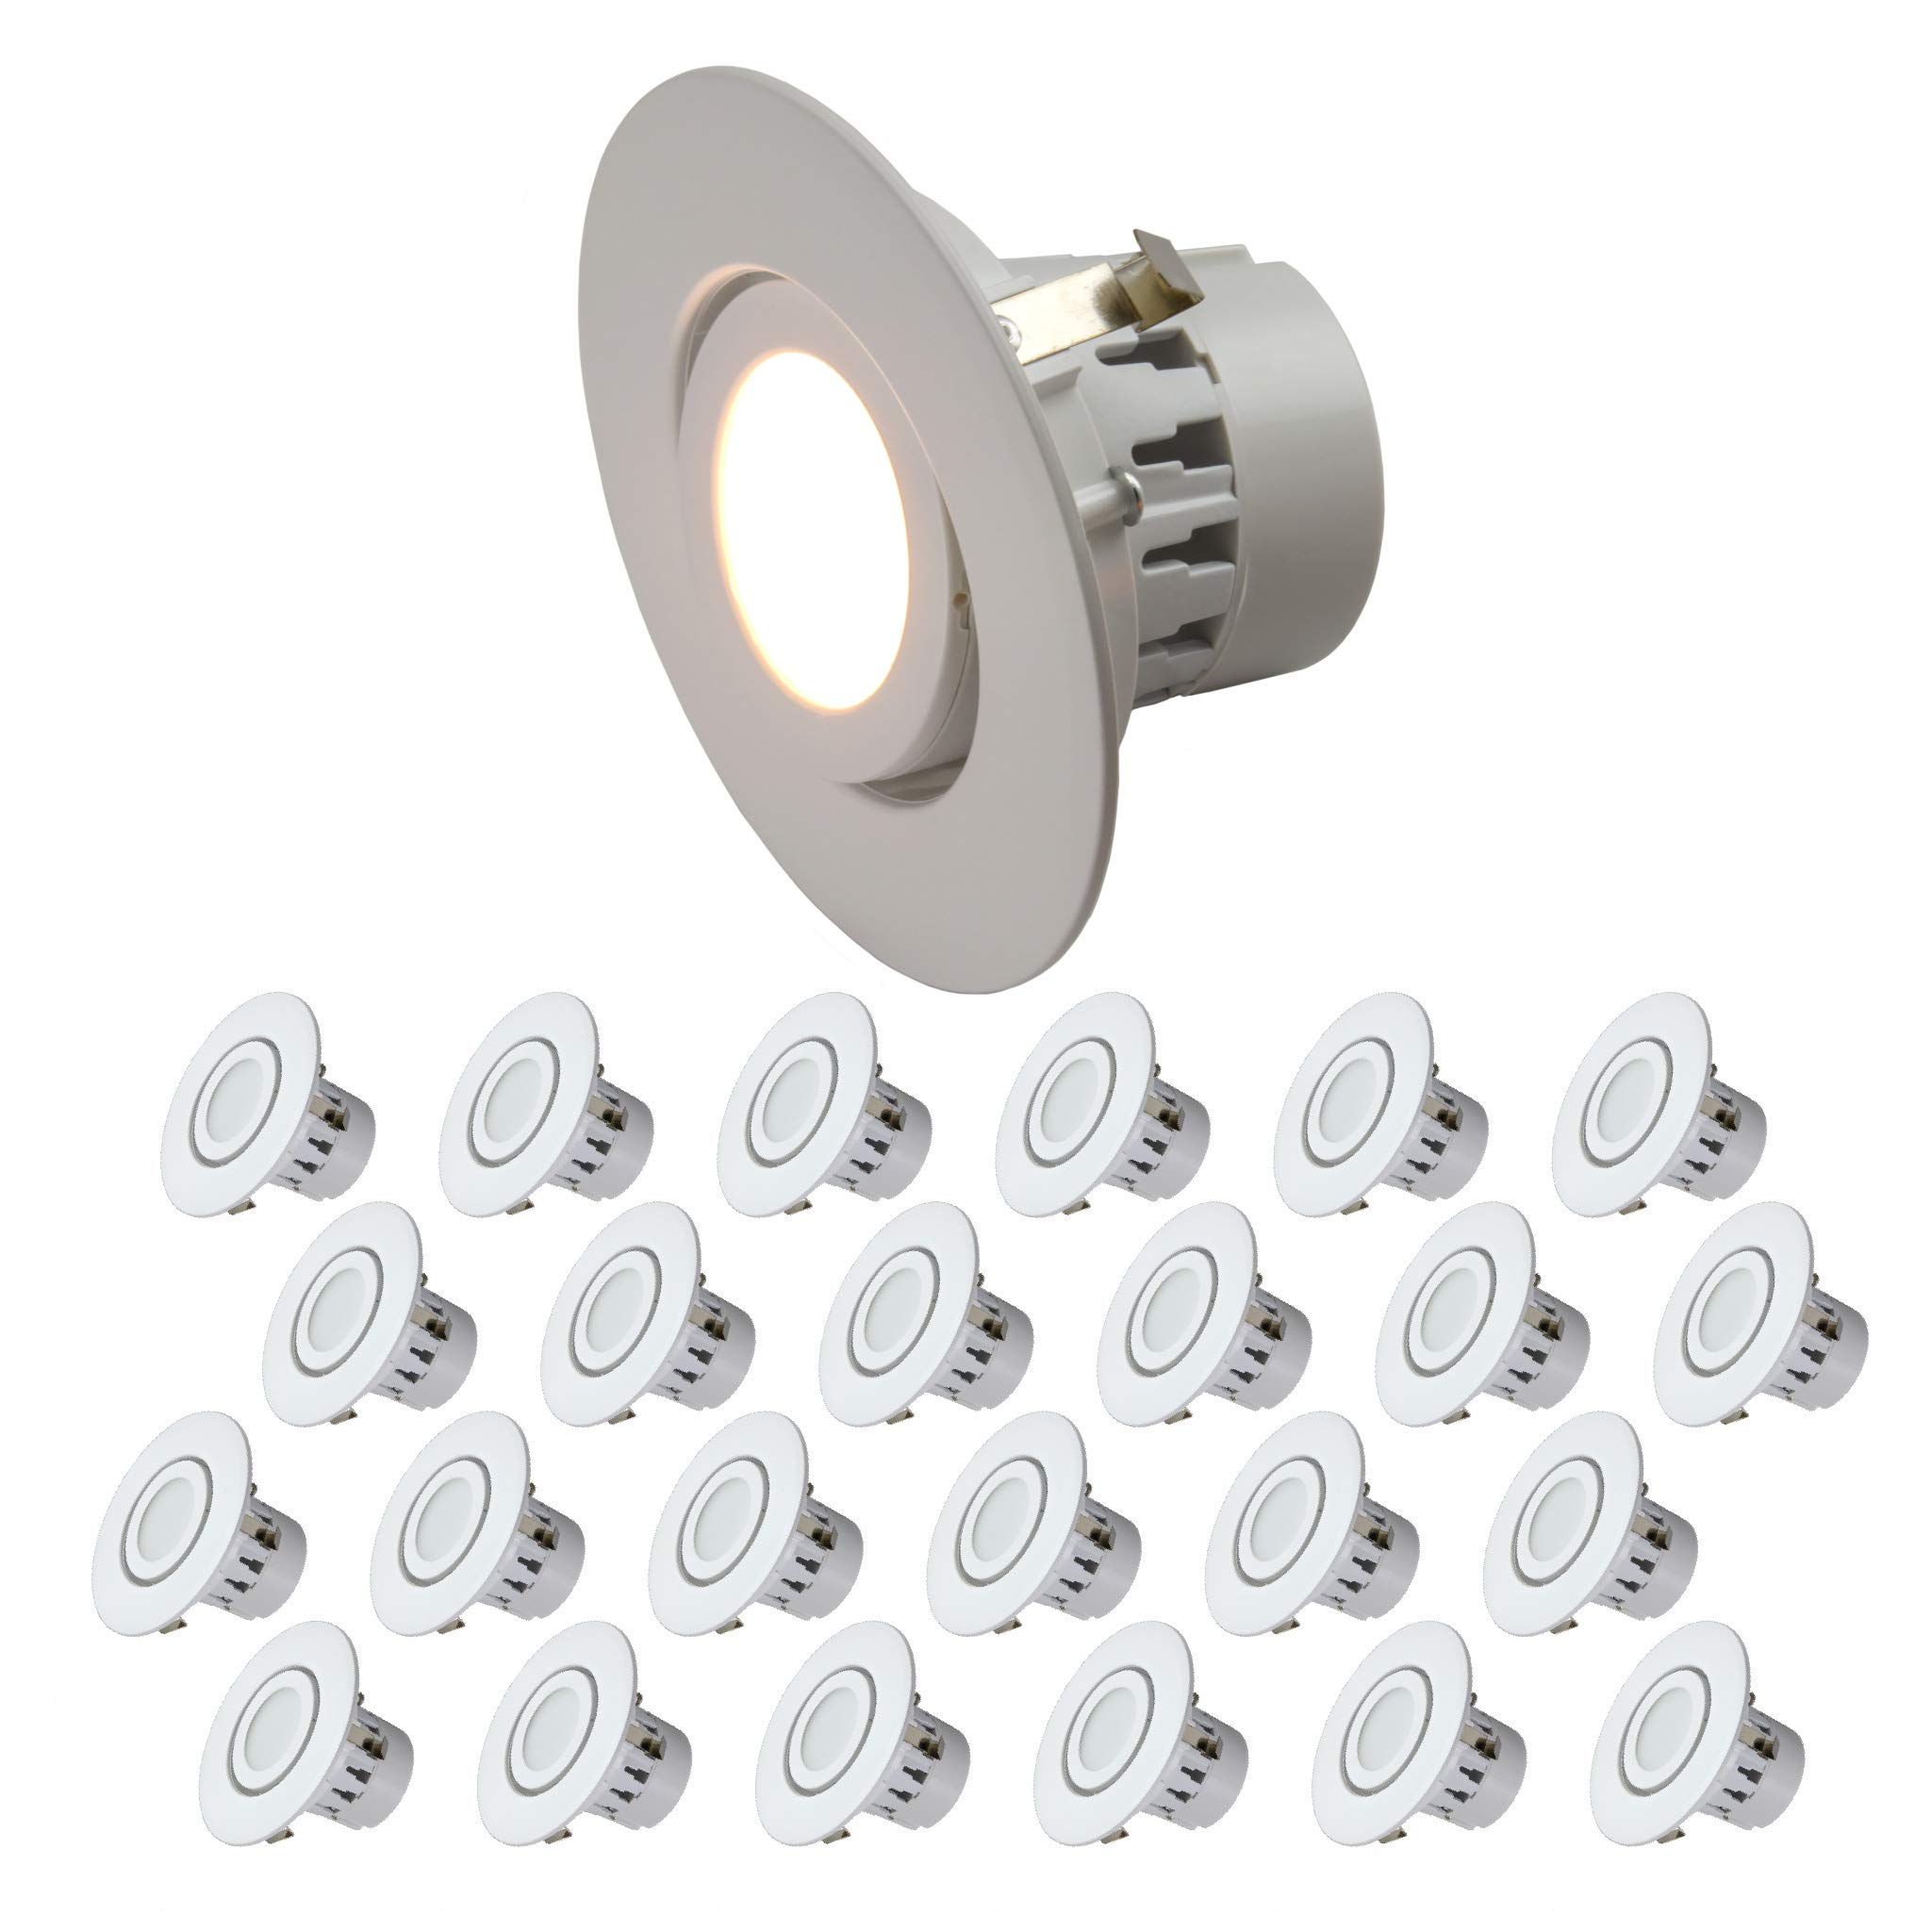 4'' Inch LED Gimbal Adjustable Rotating Downlight 10W= (75w Equivalent) Wet Loaction Rated; 25,000 Life Hours; Dimmable; 5 YR Warranty; Soft White Glow 3000K- (24 Pack)